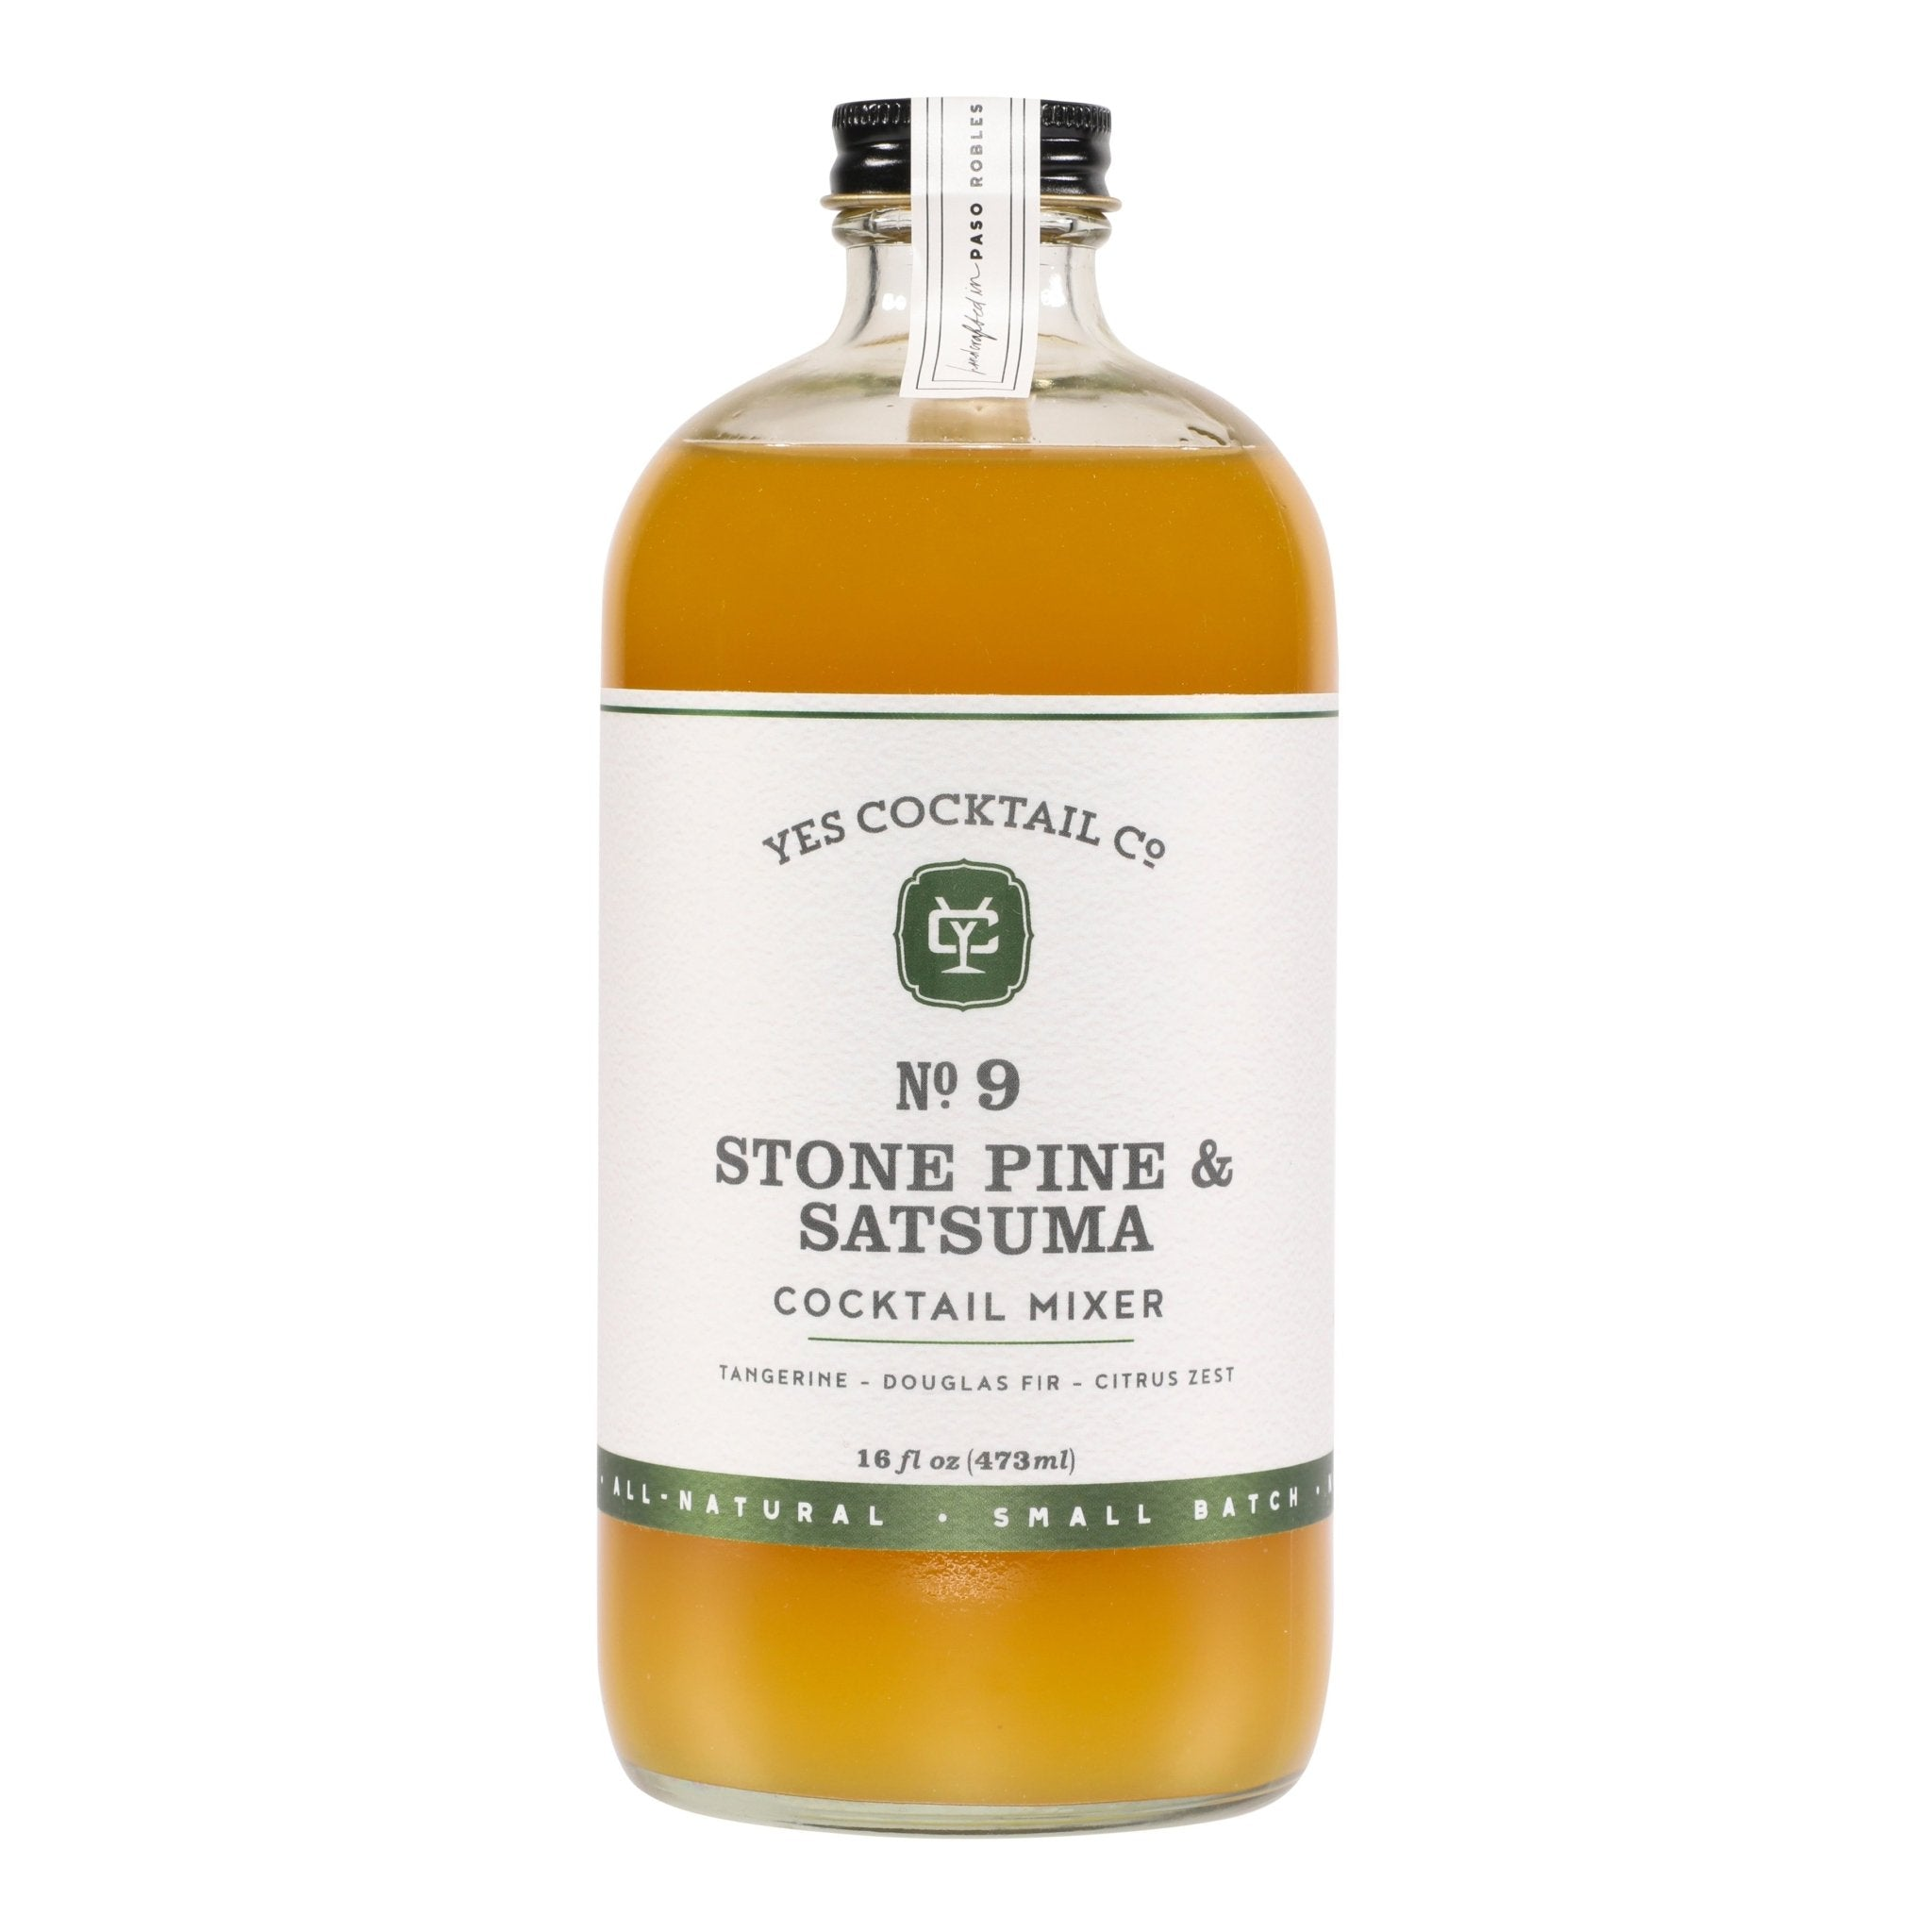 Craft Cocktail Mixer - Stone Pine and Satsuma